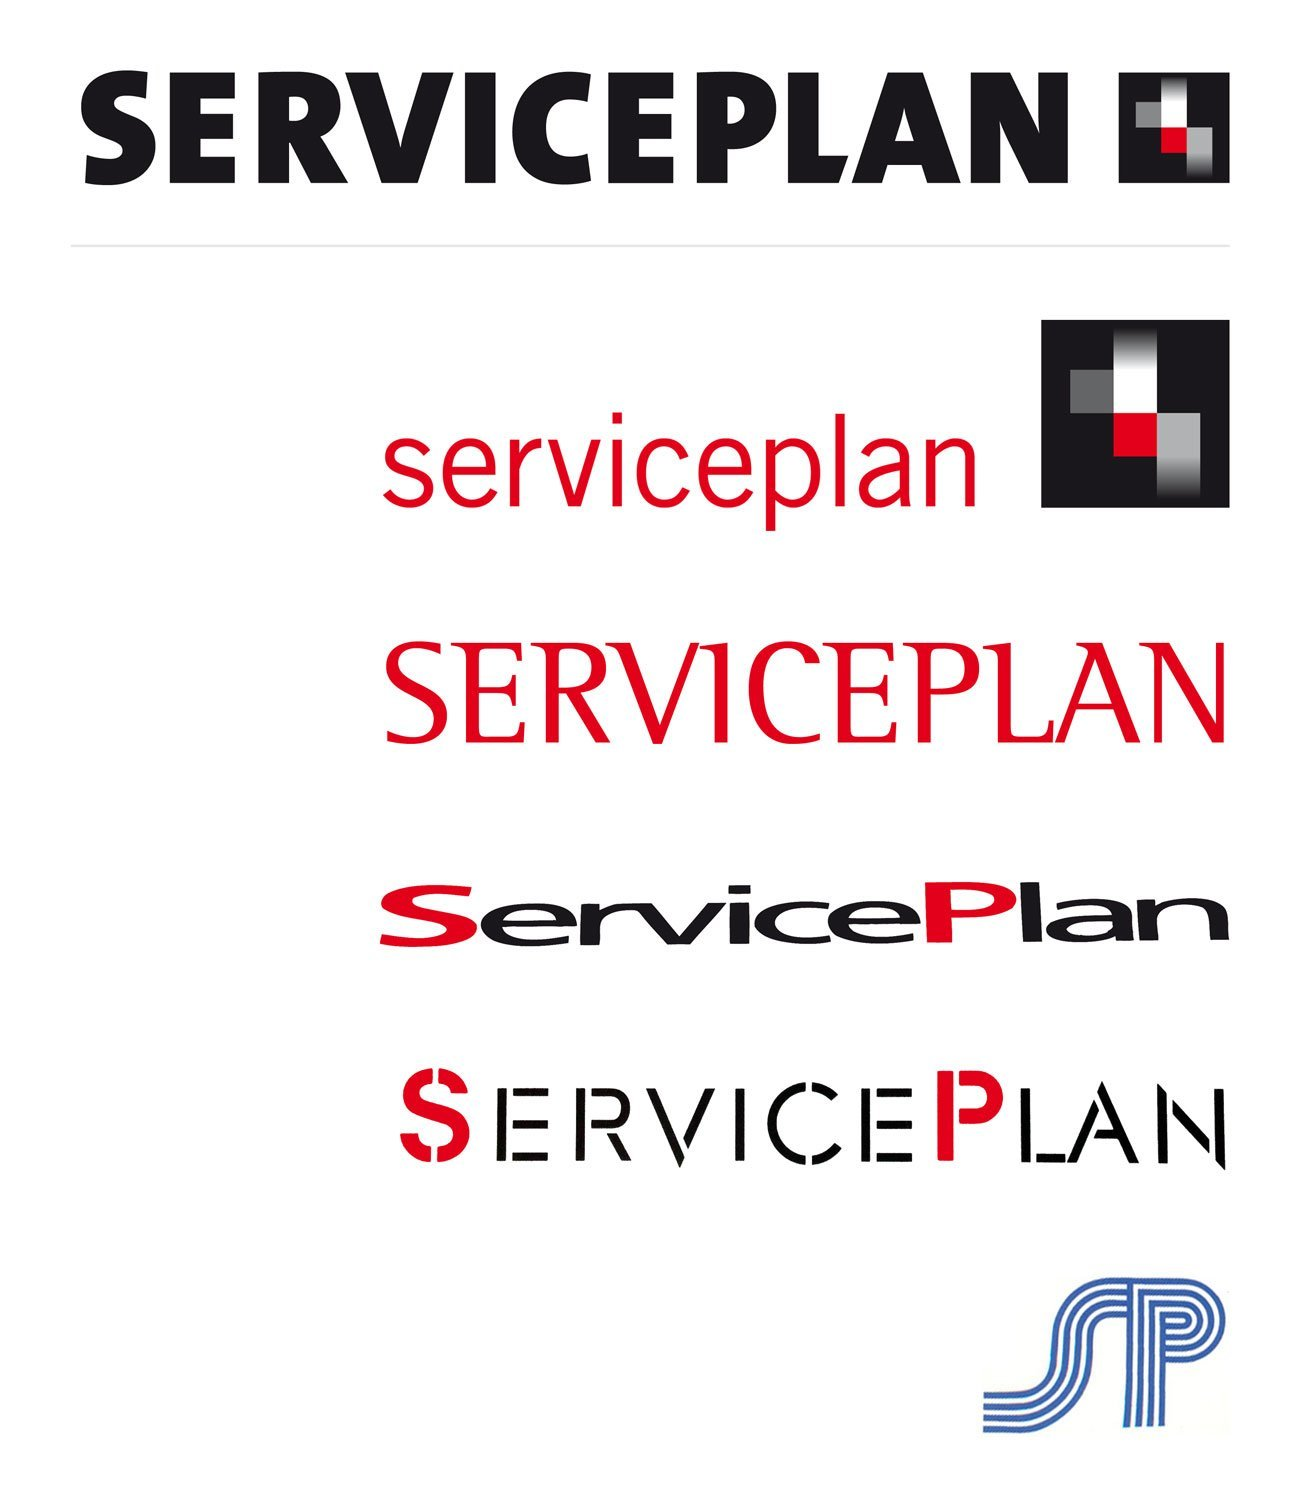 Kreation_Service_Plan_Logo_evolution